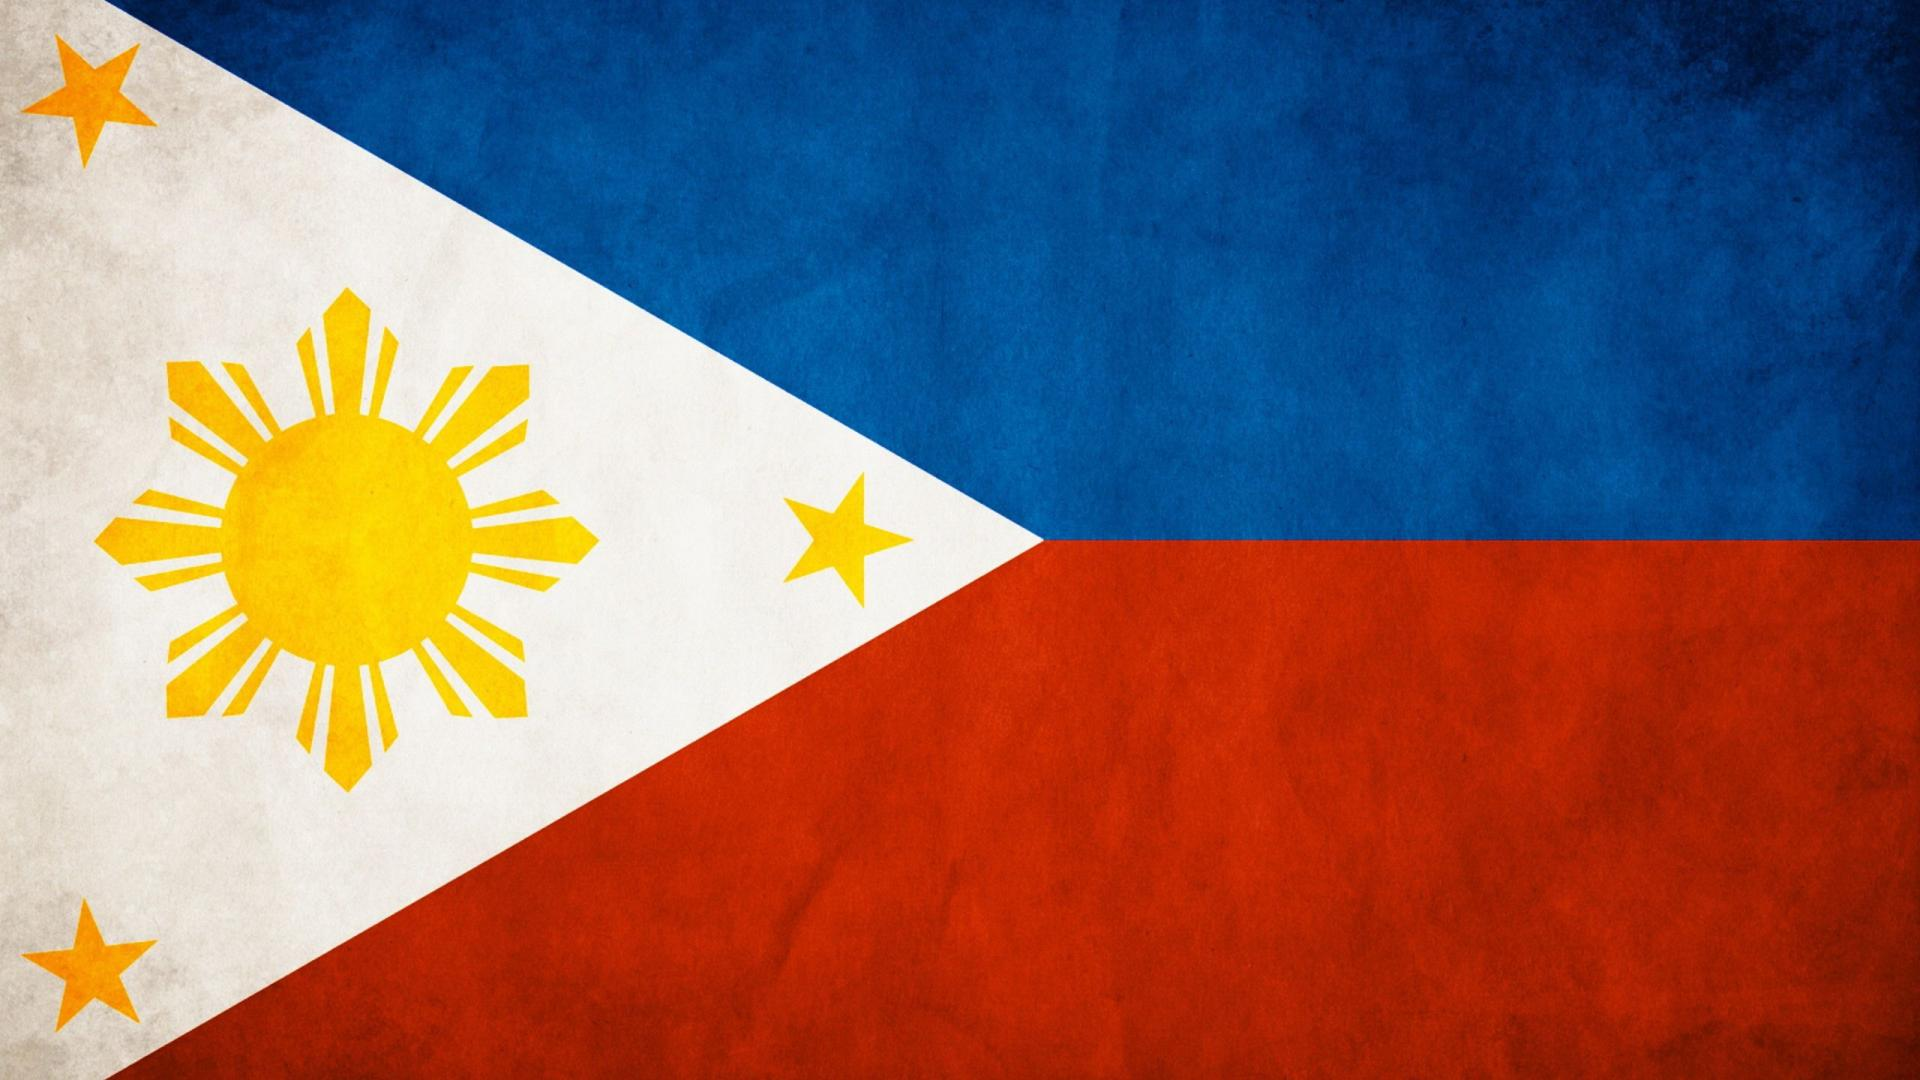 Philippine flag wallpaper hd wallpapersafari for Wallpaper home philippines